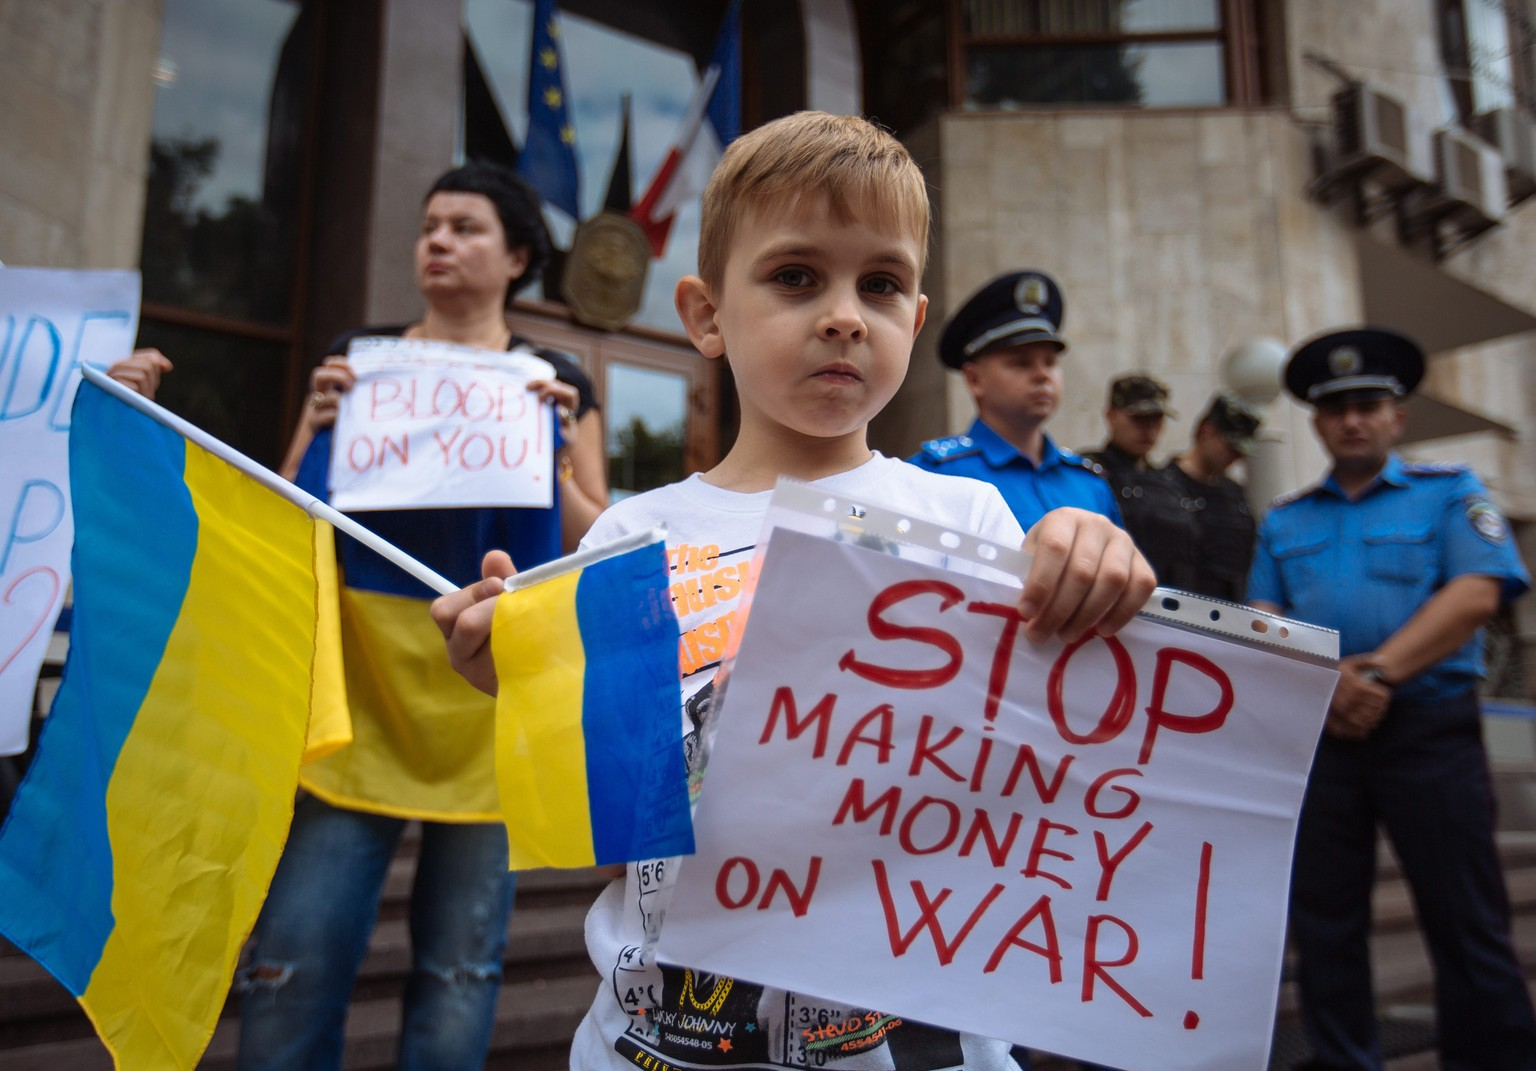 epa04326400 A young boy holds a sign and Ukrainian national flag during a rally in front of the French embassy in Kiev over the possible sale of two Mistral helicopter carriers to Russia by France, in Kiev, Ukraine, 22 July 2014. According to various media reports, France, which signed a deal with Russia in 2011 on the sale of the ships, has been urged to sell the warships to NATO instead, in light of the ongoing crisis gripping Ukraine.  EPA/ROMAN PILIPEY